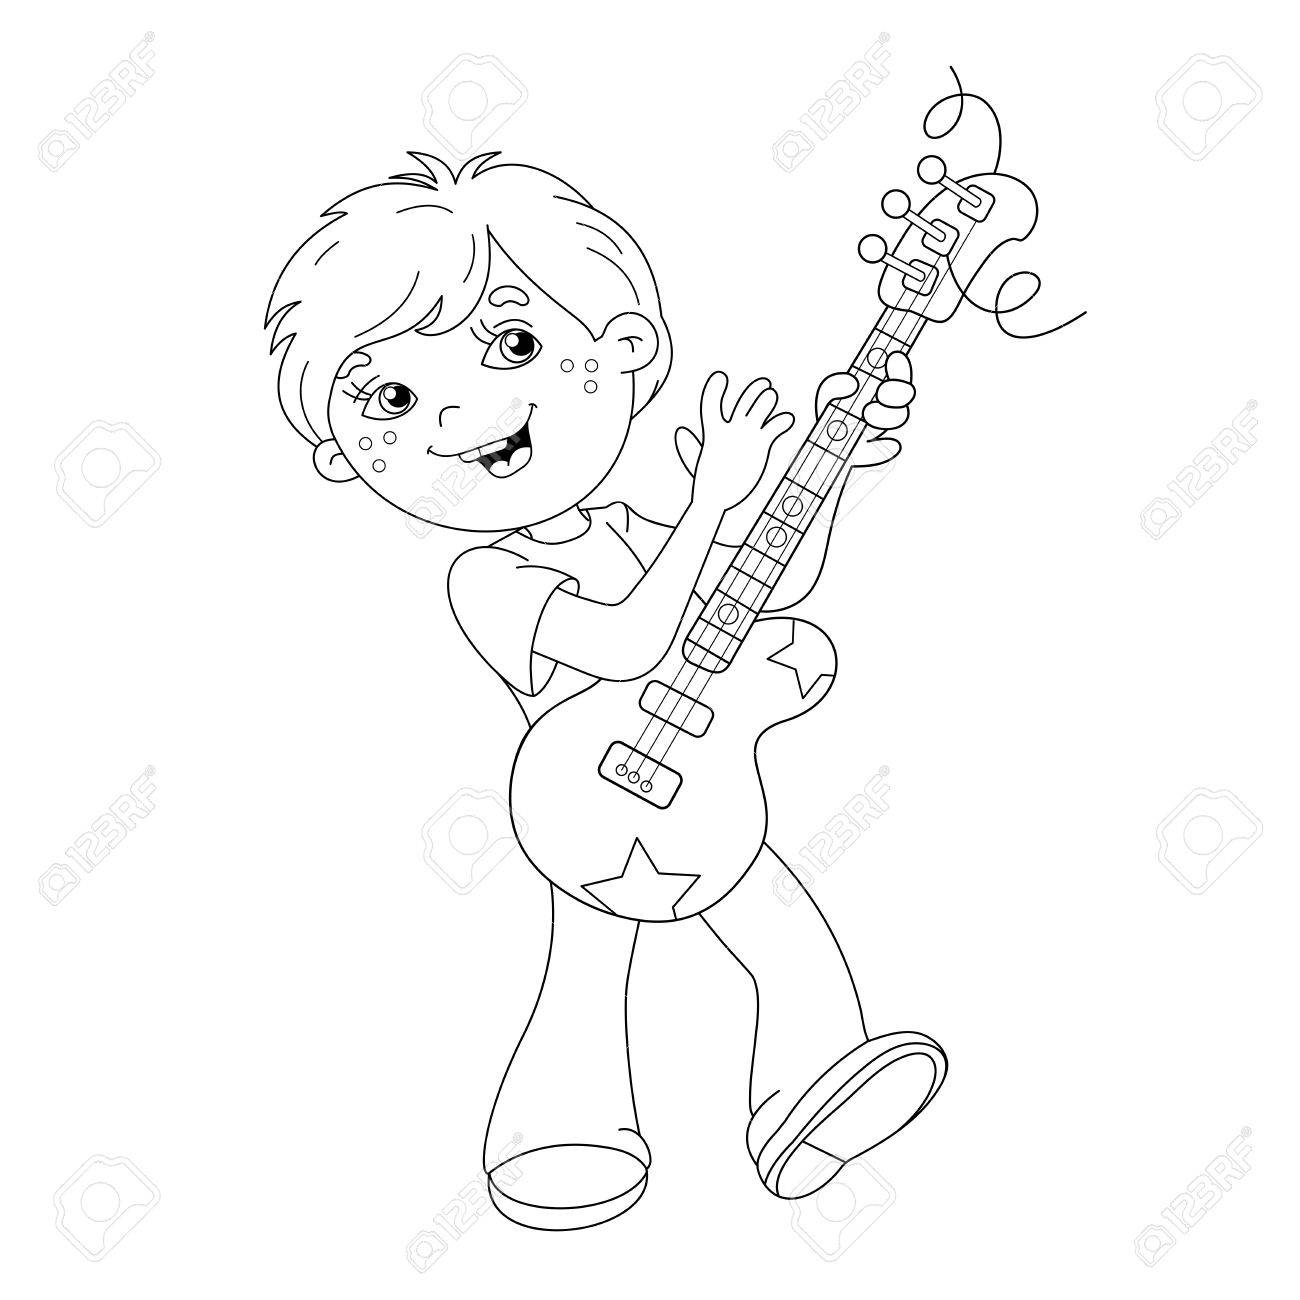 1300x1300 Coloring Page Outline Of Cartoon Boy Playing Guitar. Coloring